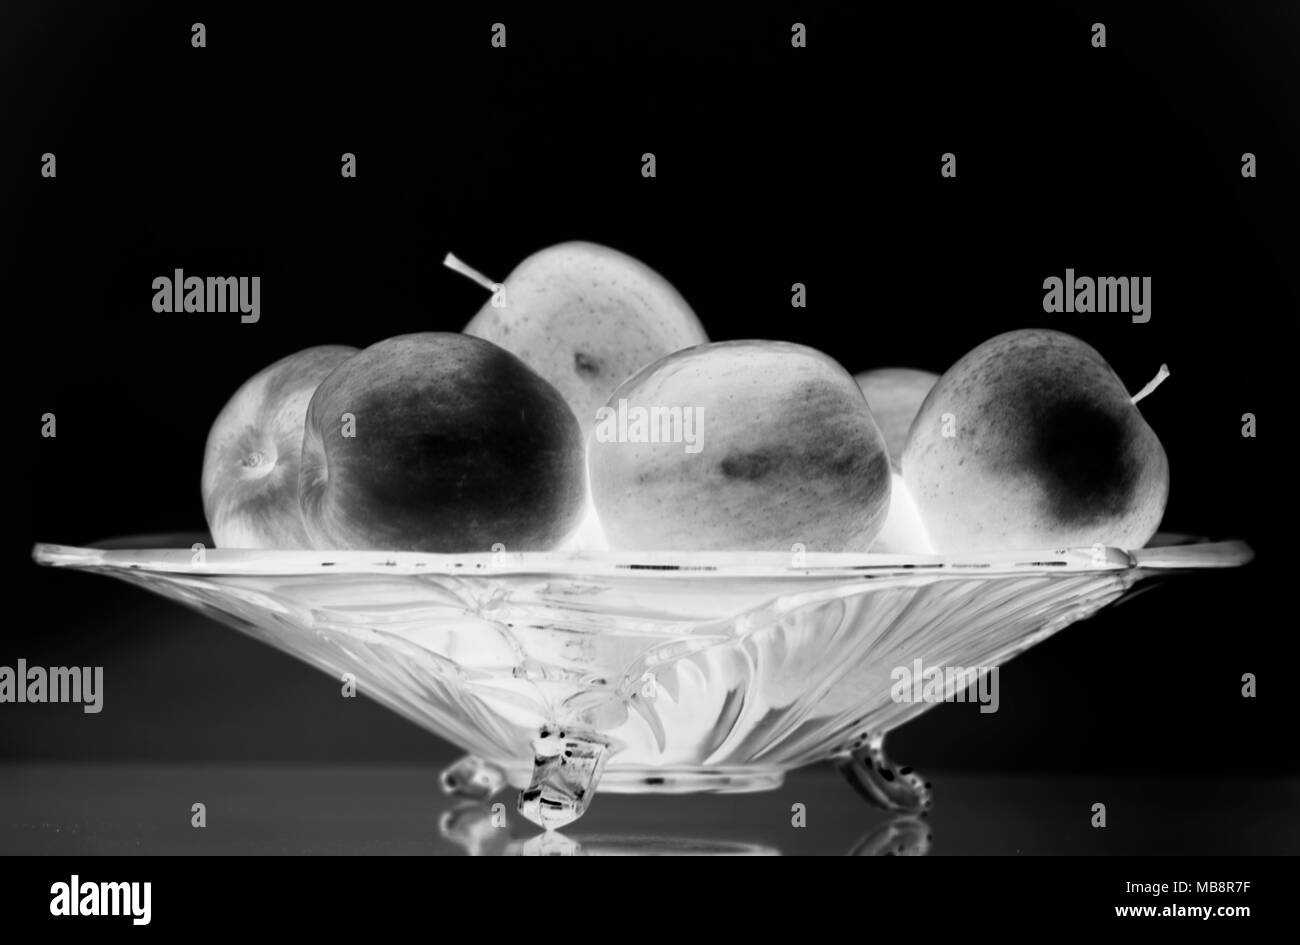 Glass bowl with apples - Stock Image